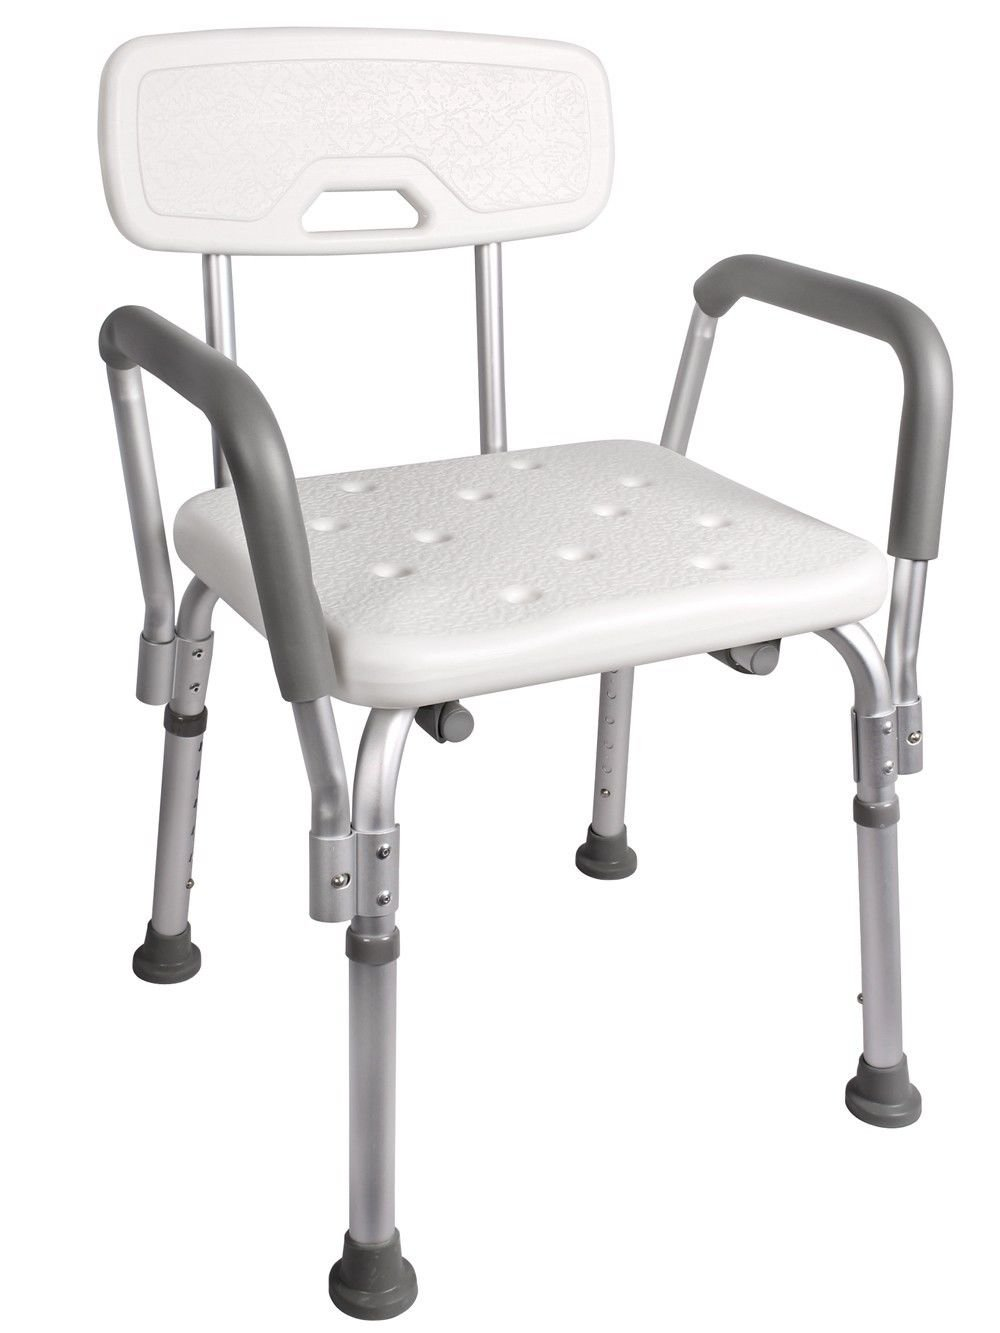 Top 10 Best Shower Chairs For The Elderly 2016 On Flipboard